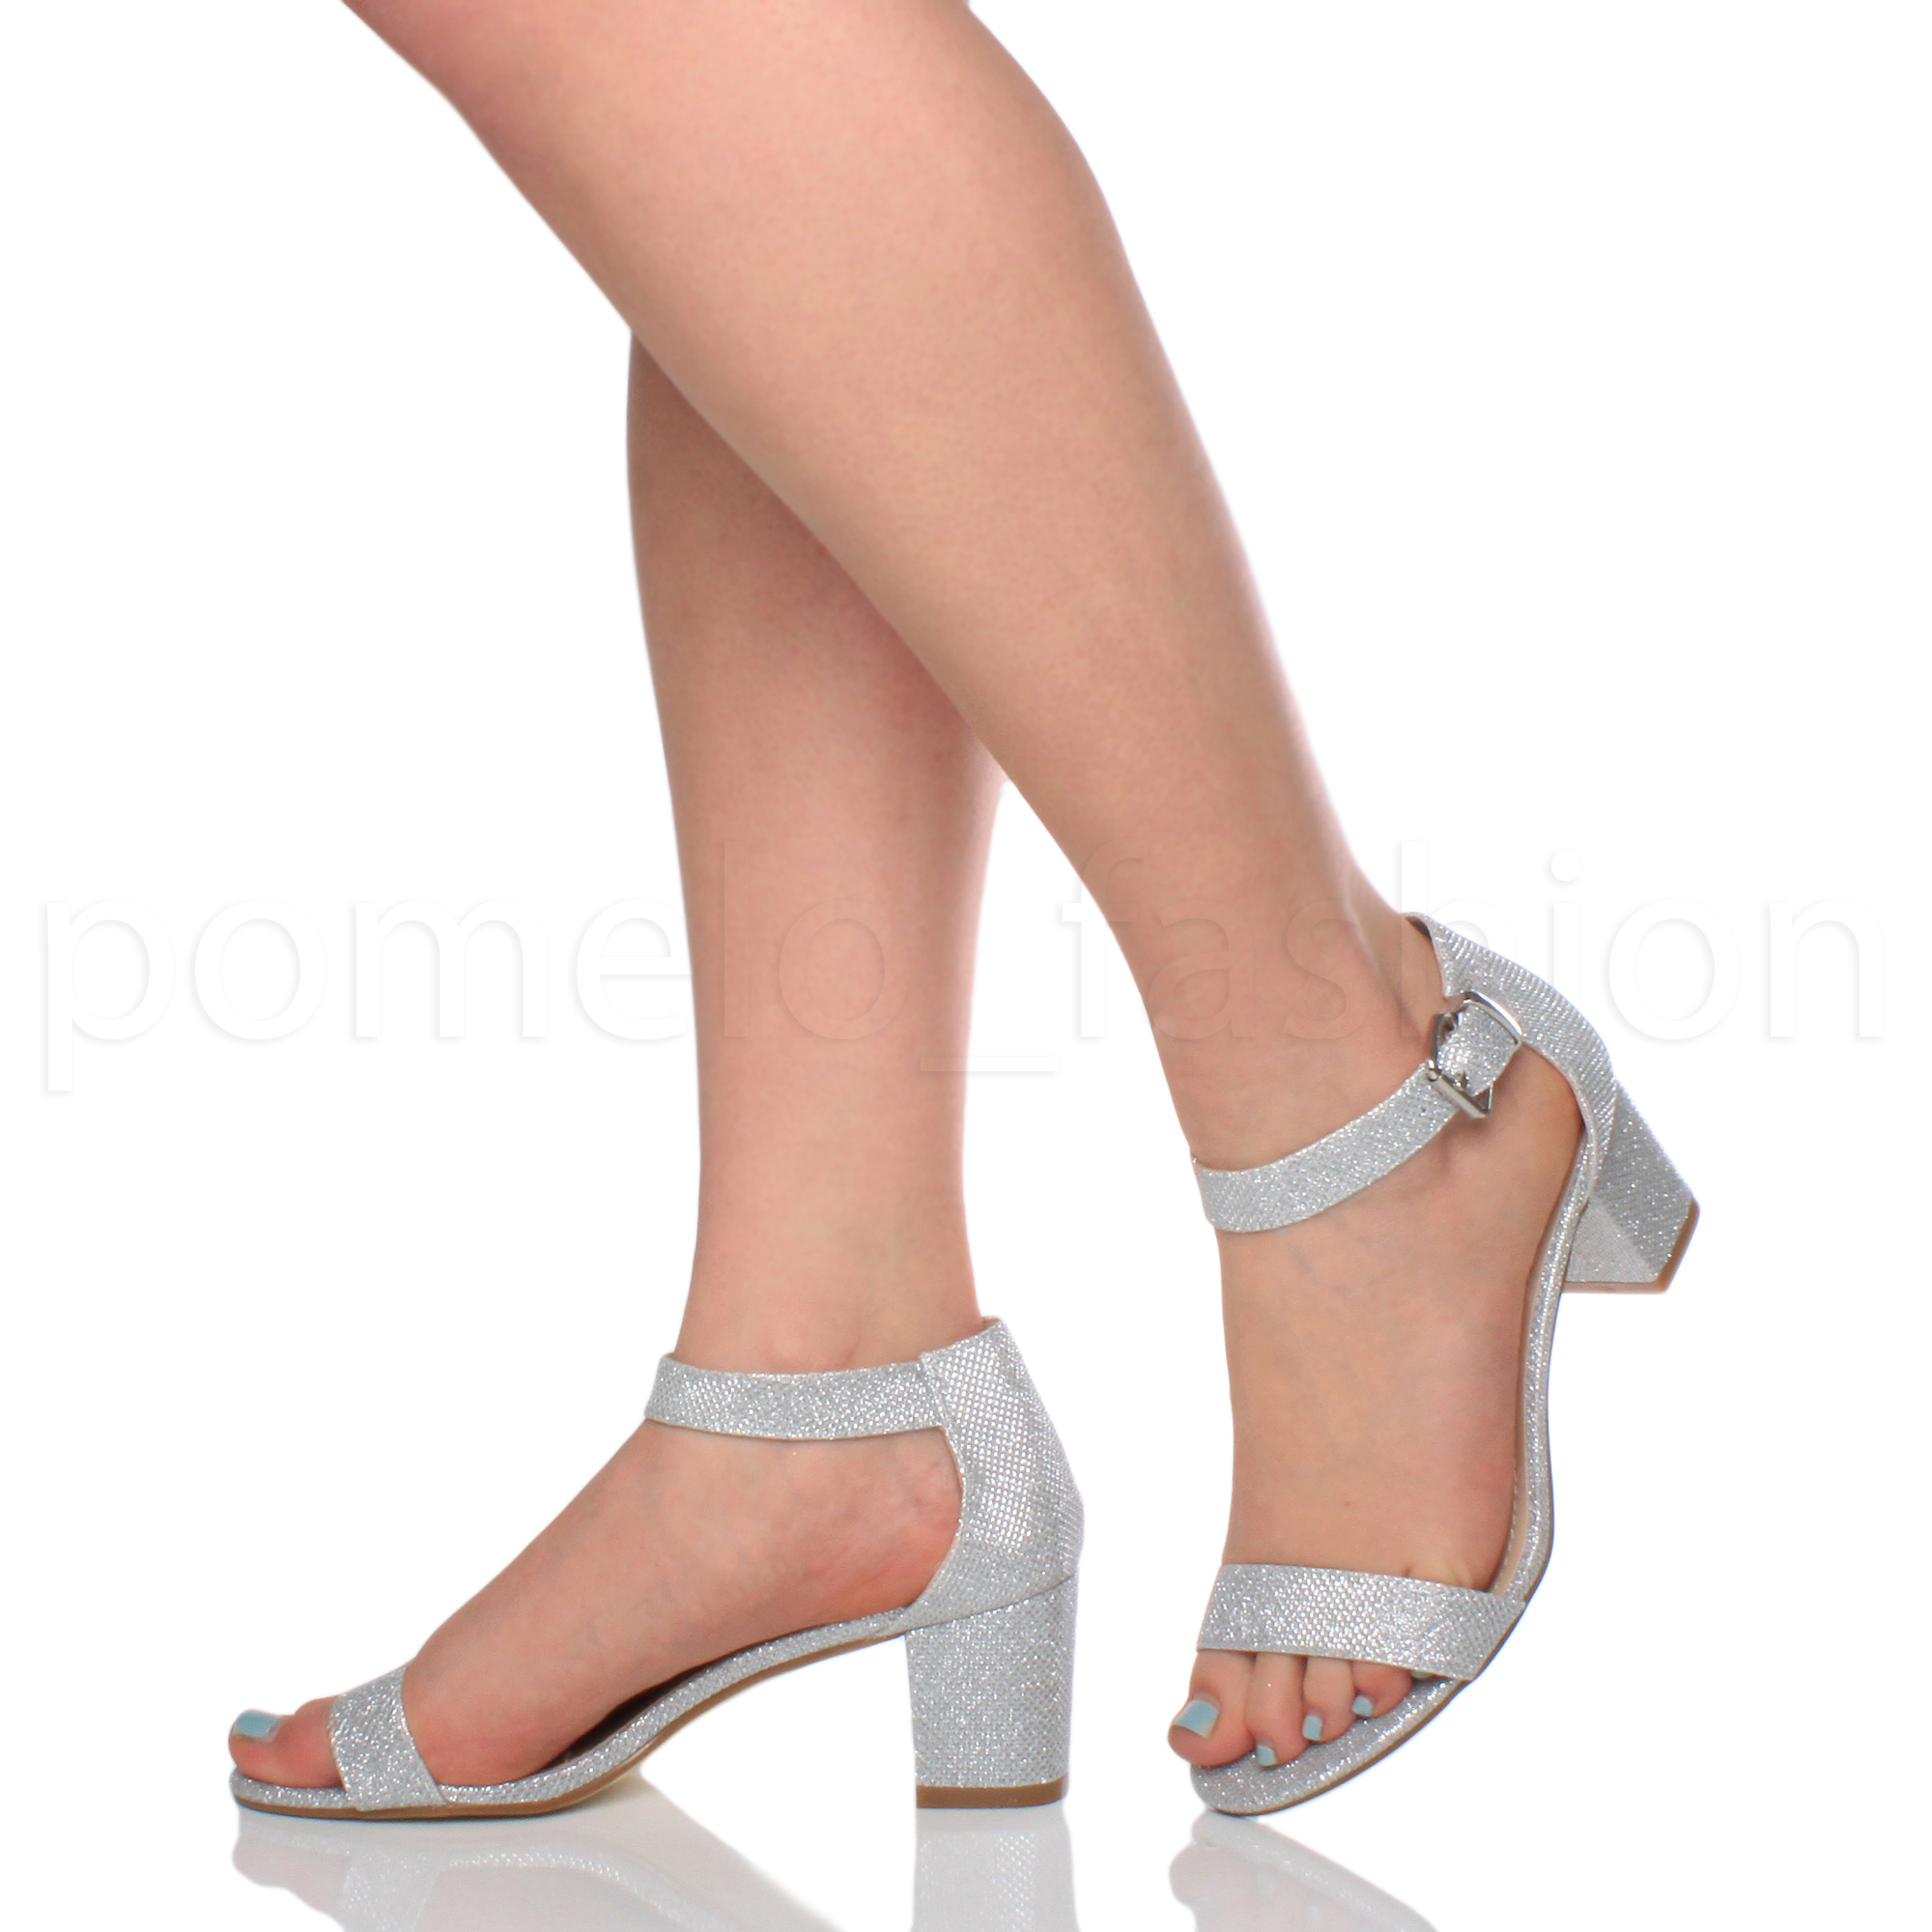 37c99ef9f085 WOMENS LADIES LOW MID BLOCK HEEL ANKLE STRAP PEEPTOE .